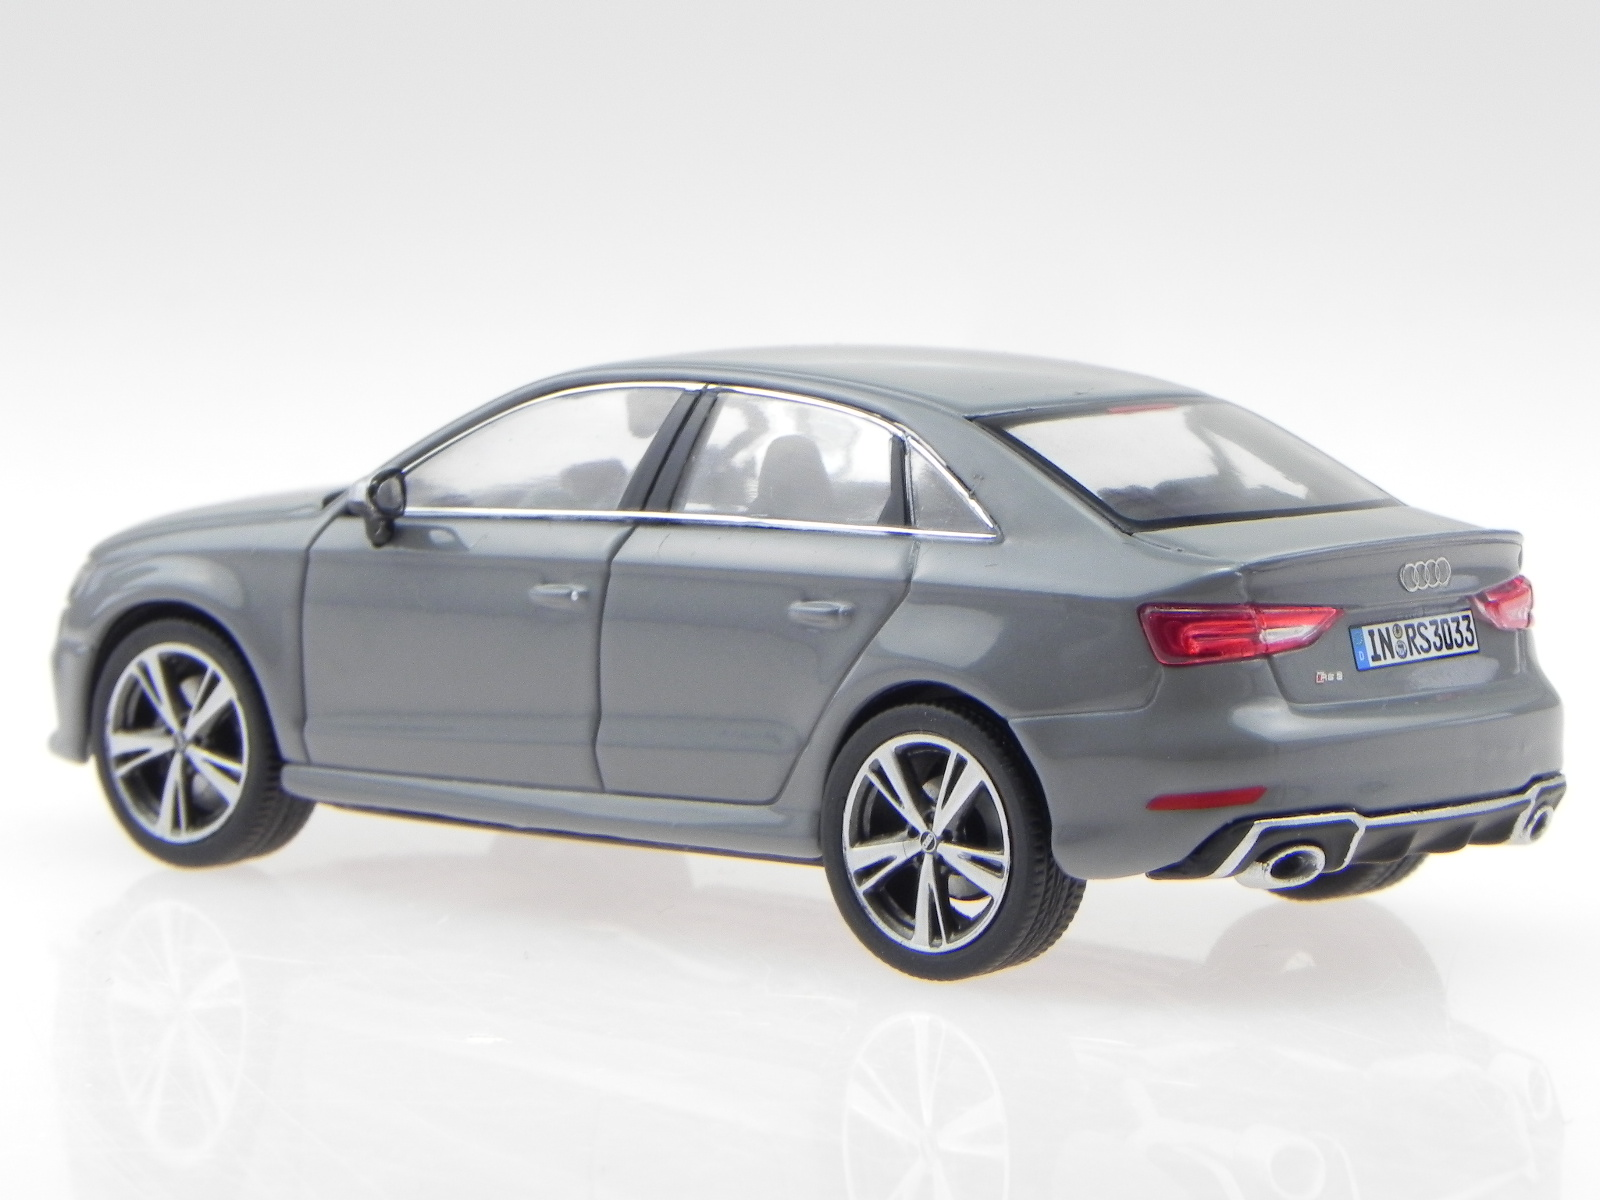 Iscale Audi Rs3 Saloon In Nardo Grey 5011613131 1 43 For Sale Online Ebay